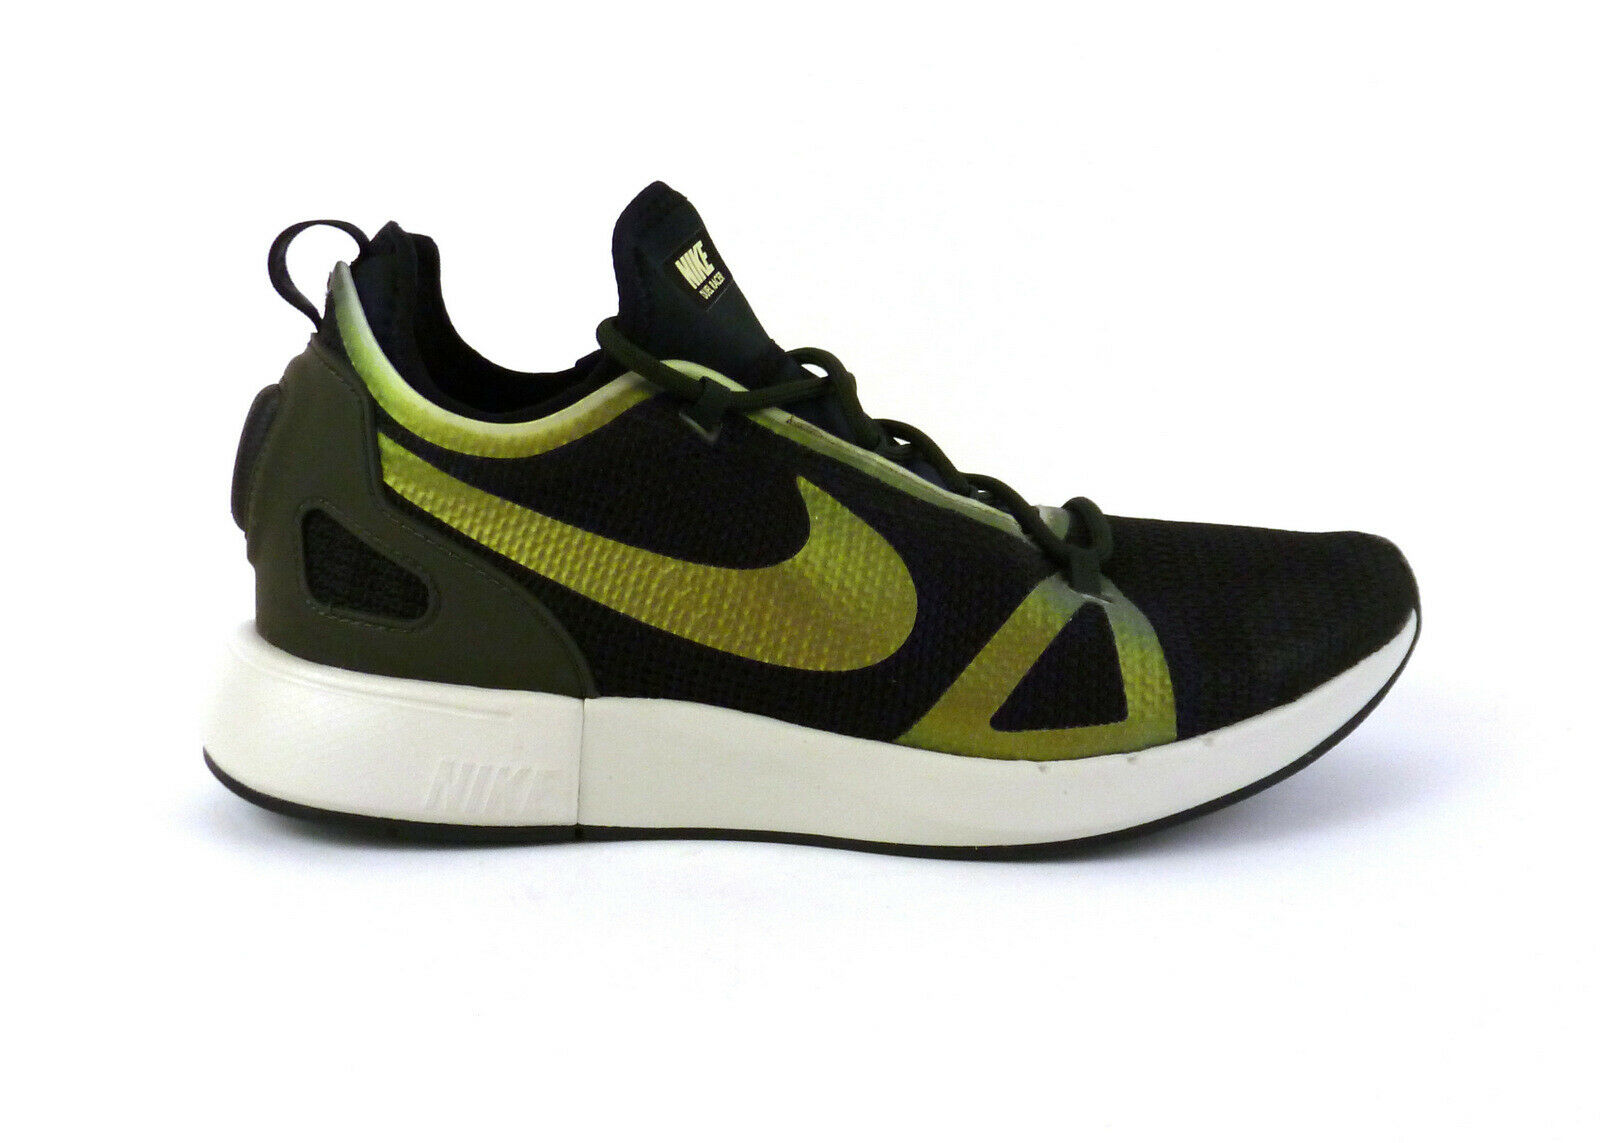 Nike men's Duel Racer casual shoes sneakers size 10.5 10.5 10.5 Black Sequoia 918228 012 fd3ee0